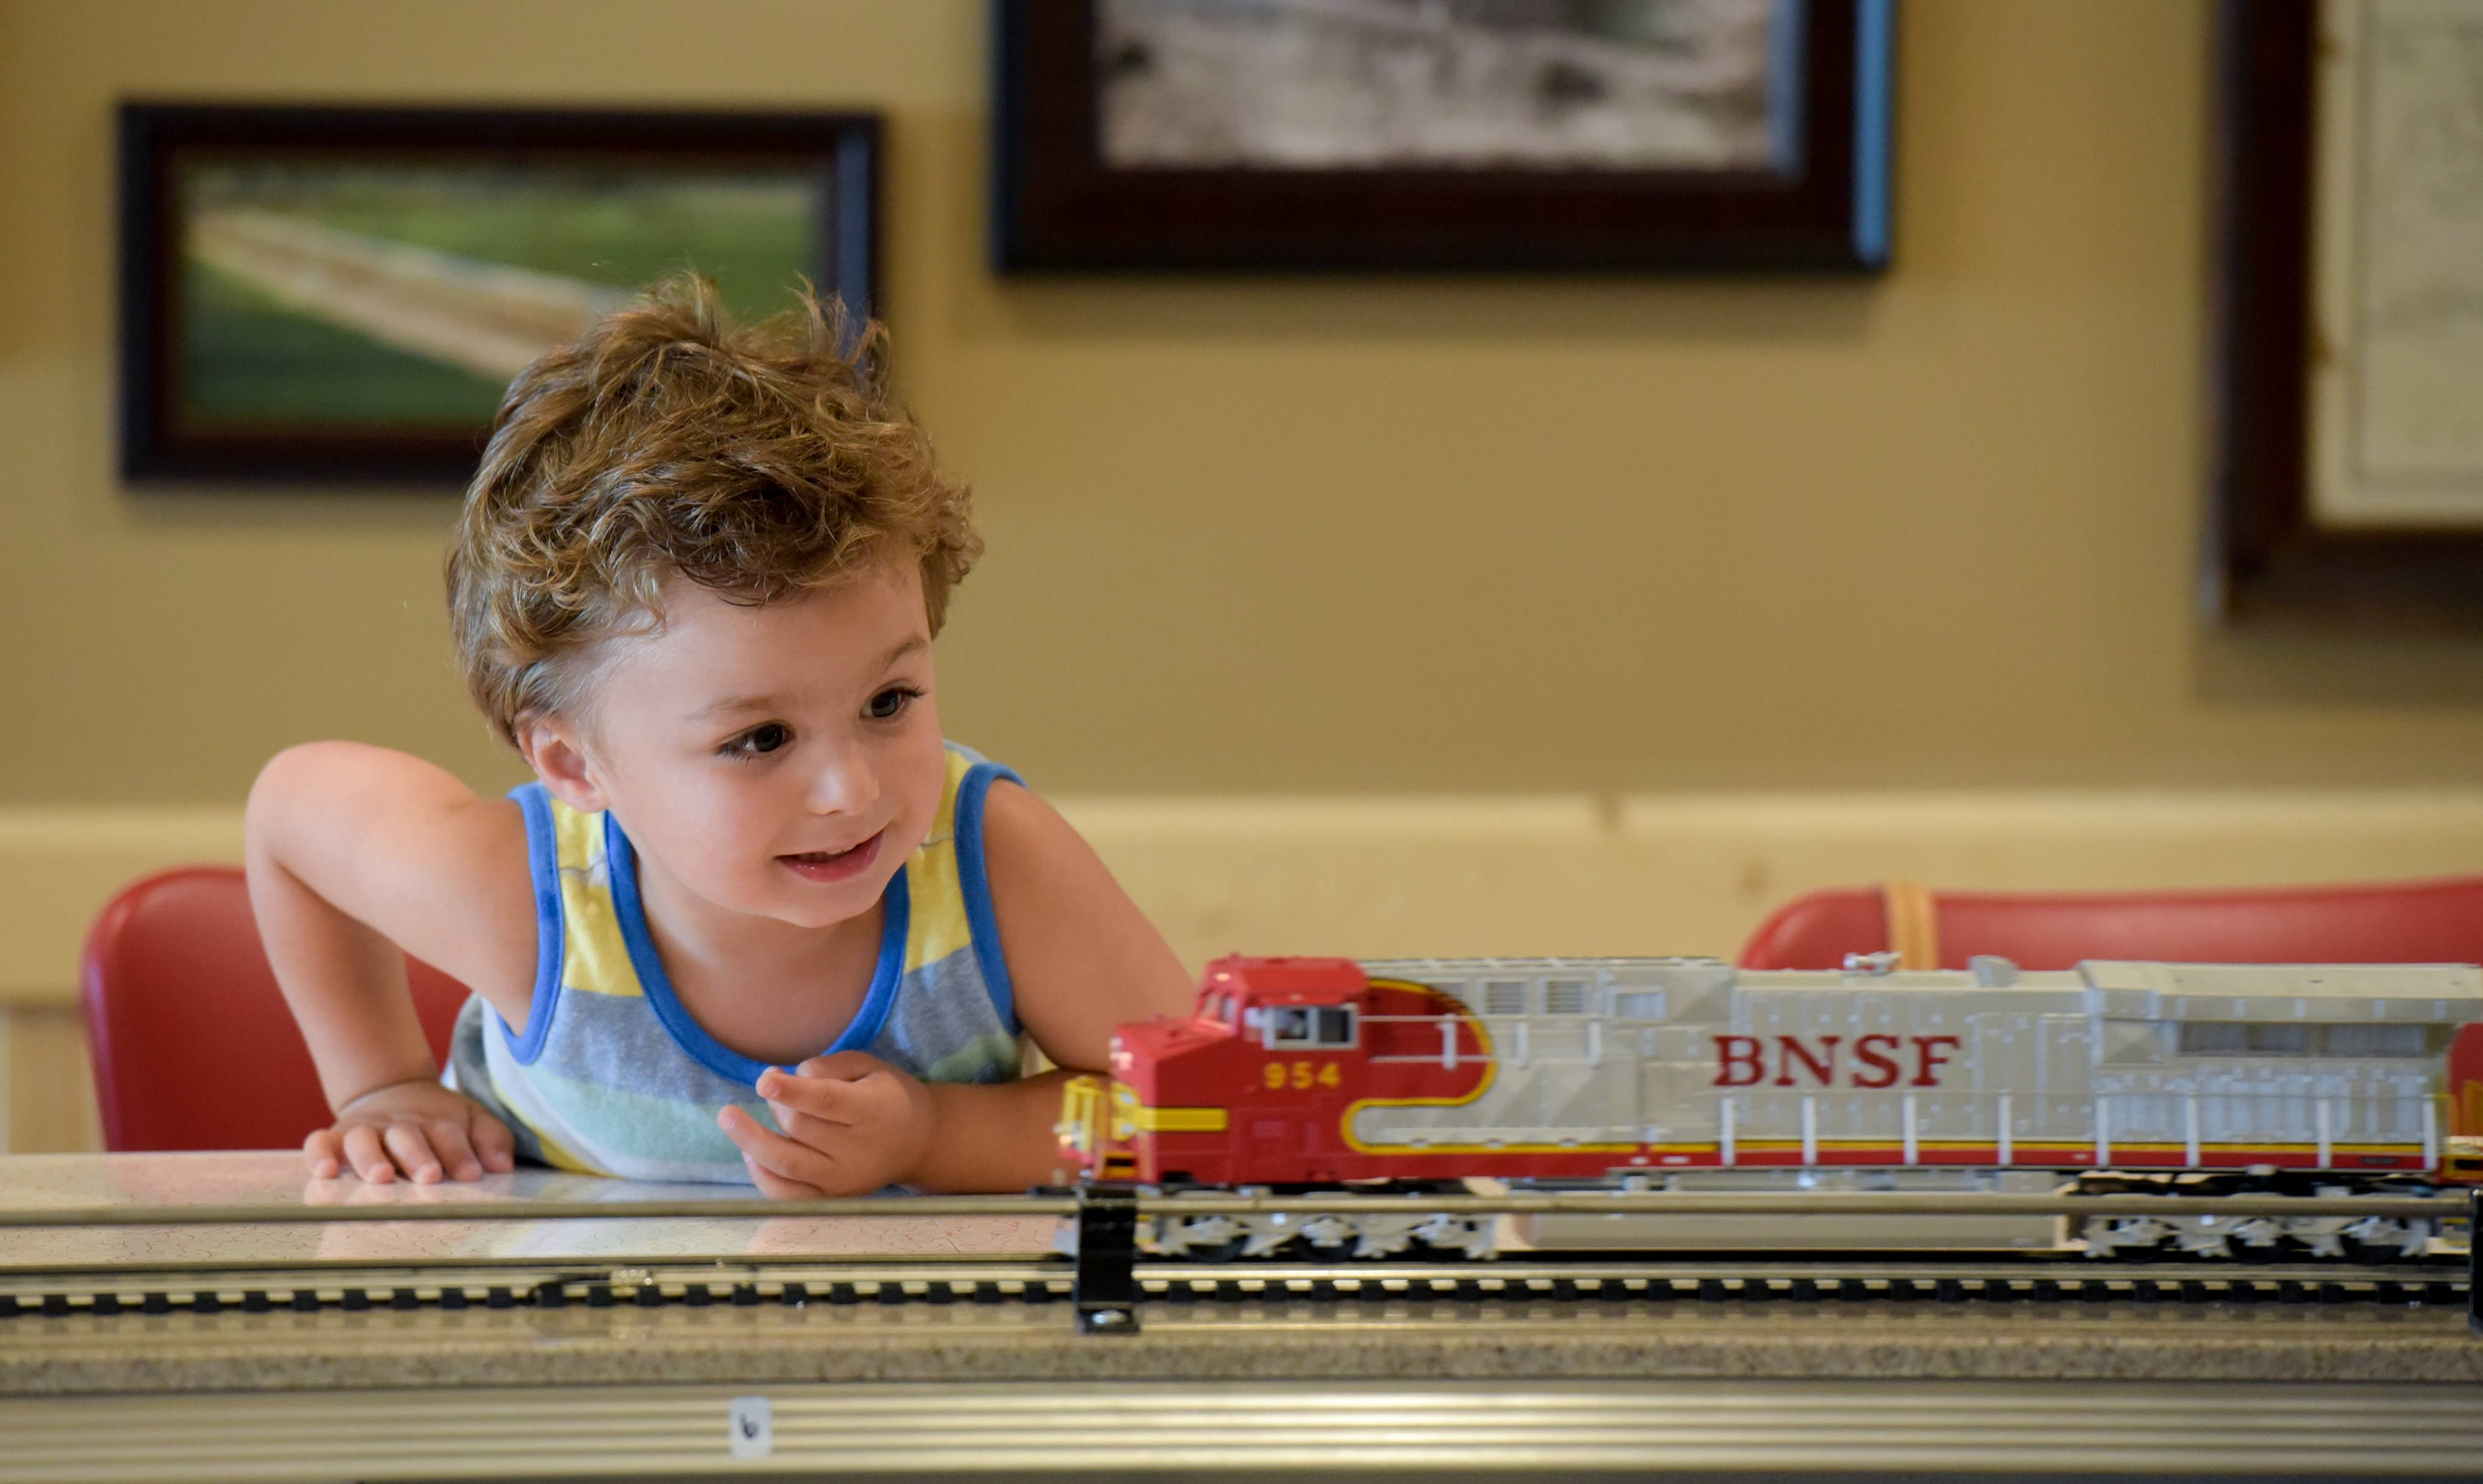 Vinny Barbanente, 3, of Inverness, gets a close-up look at a Lionel model train Thursday as it rolls by delivering food to diners at 2Toots Train Whistle Grill in Naperville. The Naperville location of the family-friendly train-themed restaurant opened this spring.